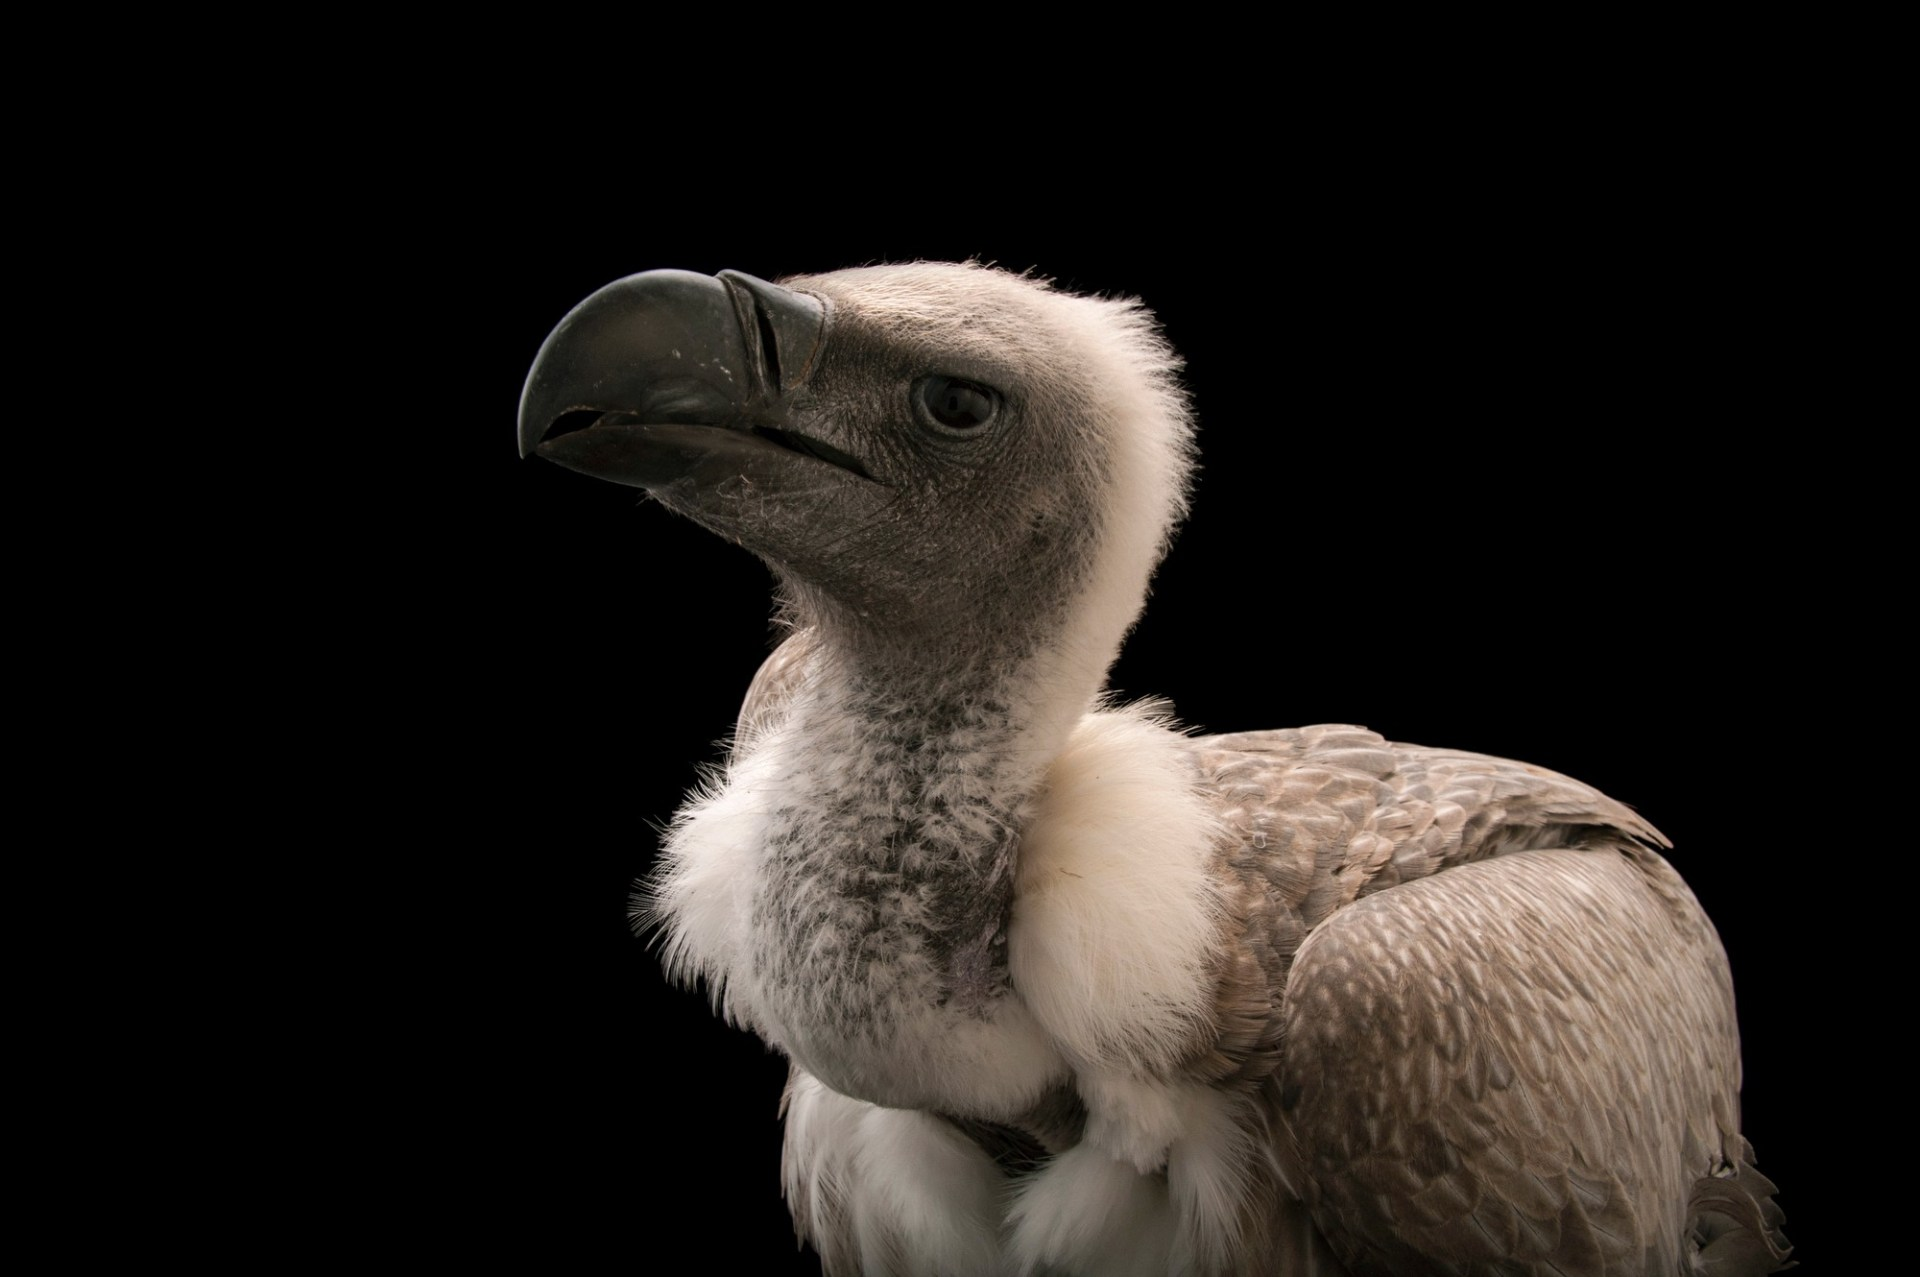 An endangered African white-backed vulture (Gyps africanus) at the Cleveland Metroparks Zoo.